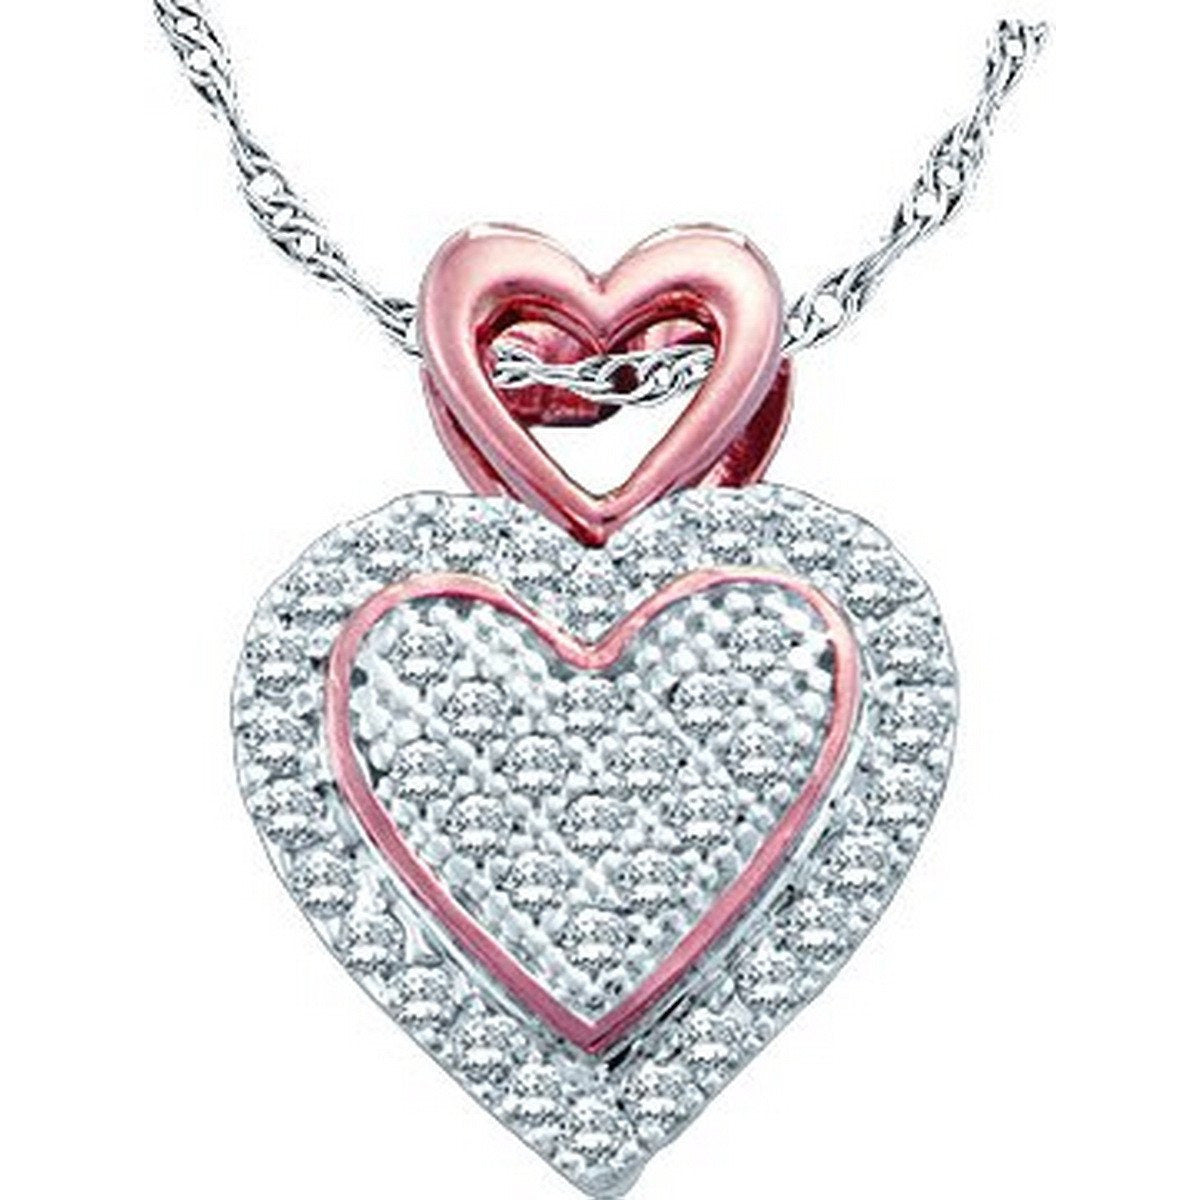 10kt White Gold Womens Round Diamond Rose-tone Heart Cluster Pendant 1/6 Cttw 51150 - shirin-diamonds